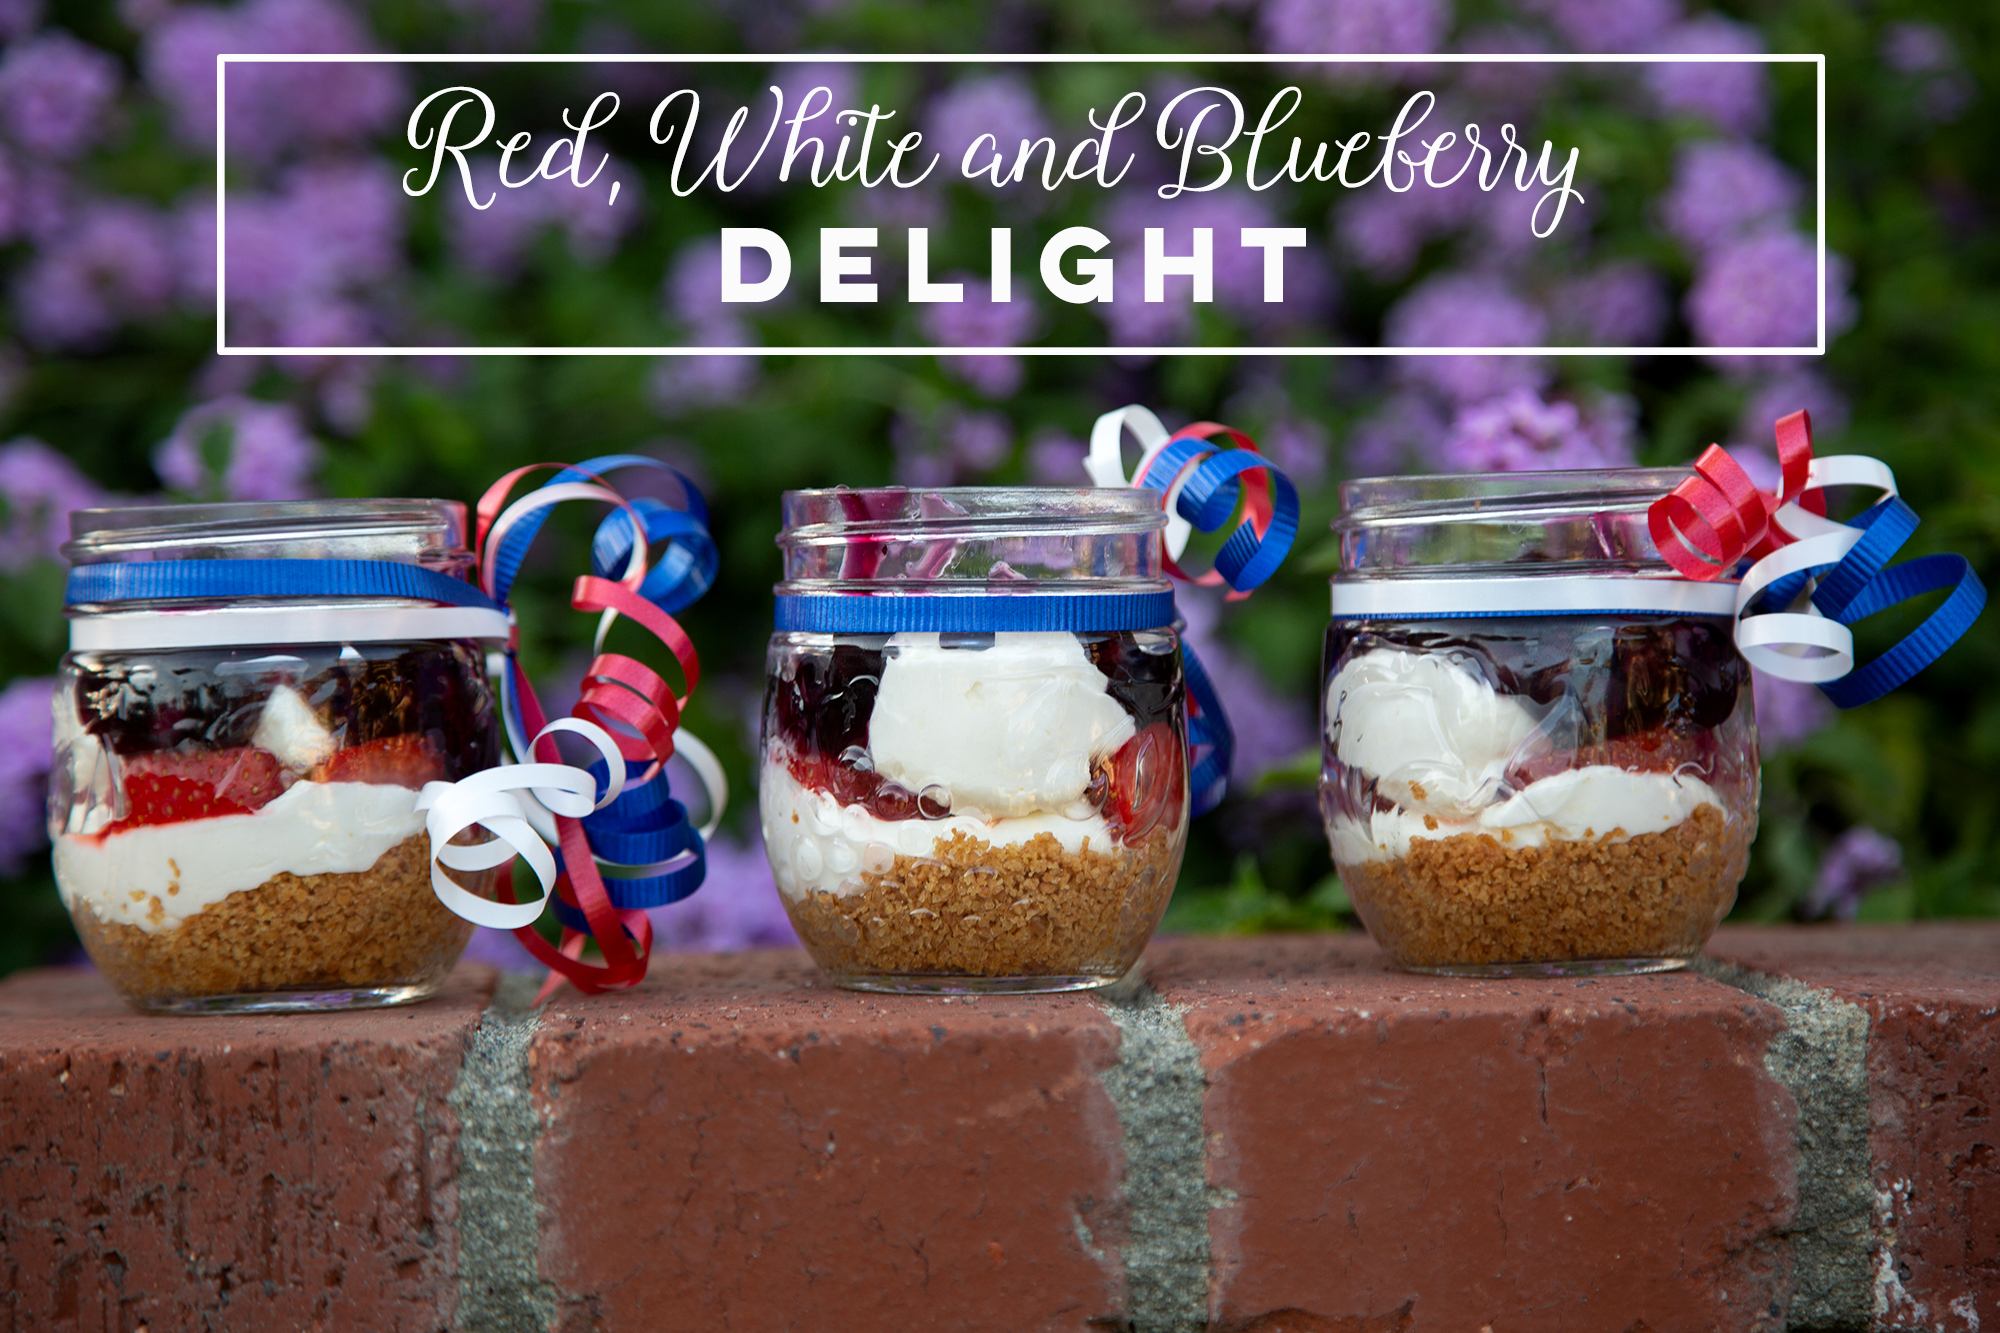 Red, White & Blueberry Delight - This creamy layered dessert from Dahlias and Death is the perfect summertime treat! Click the photo for recipe.